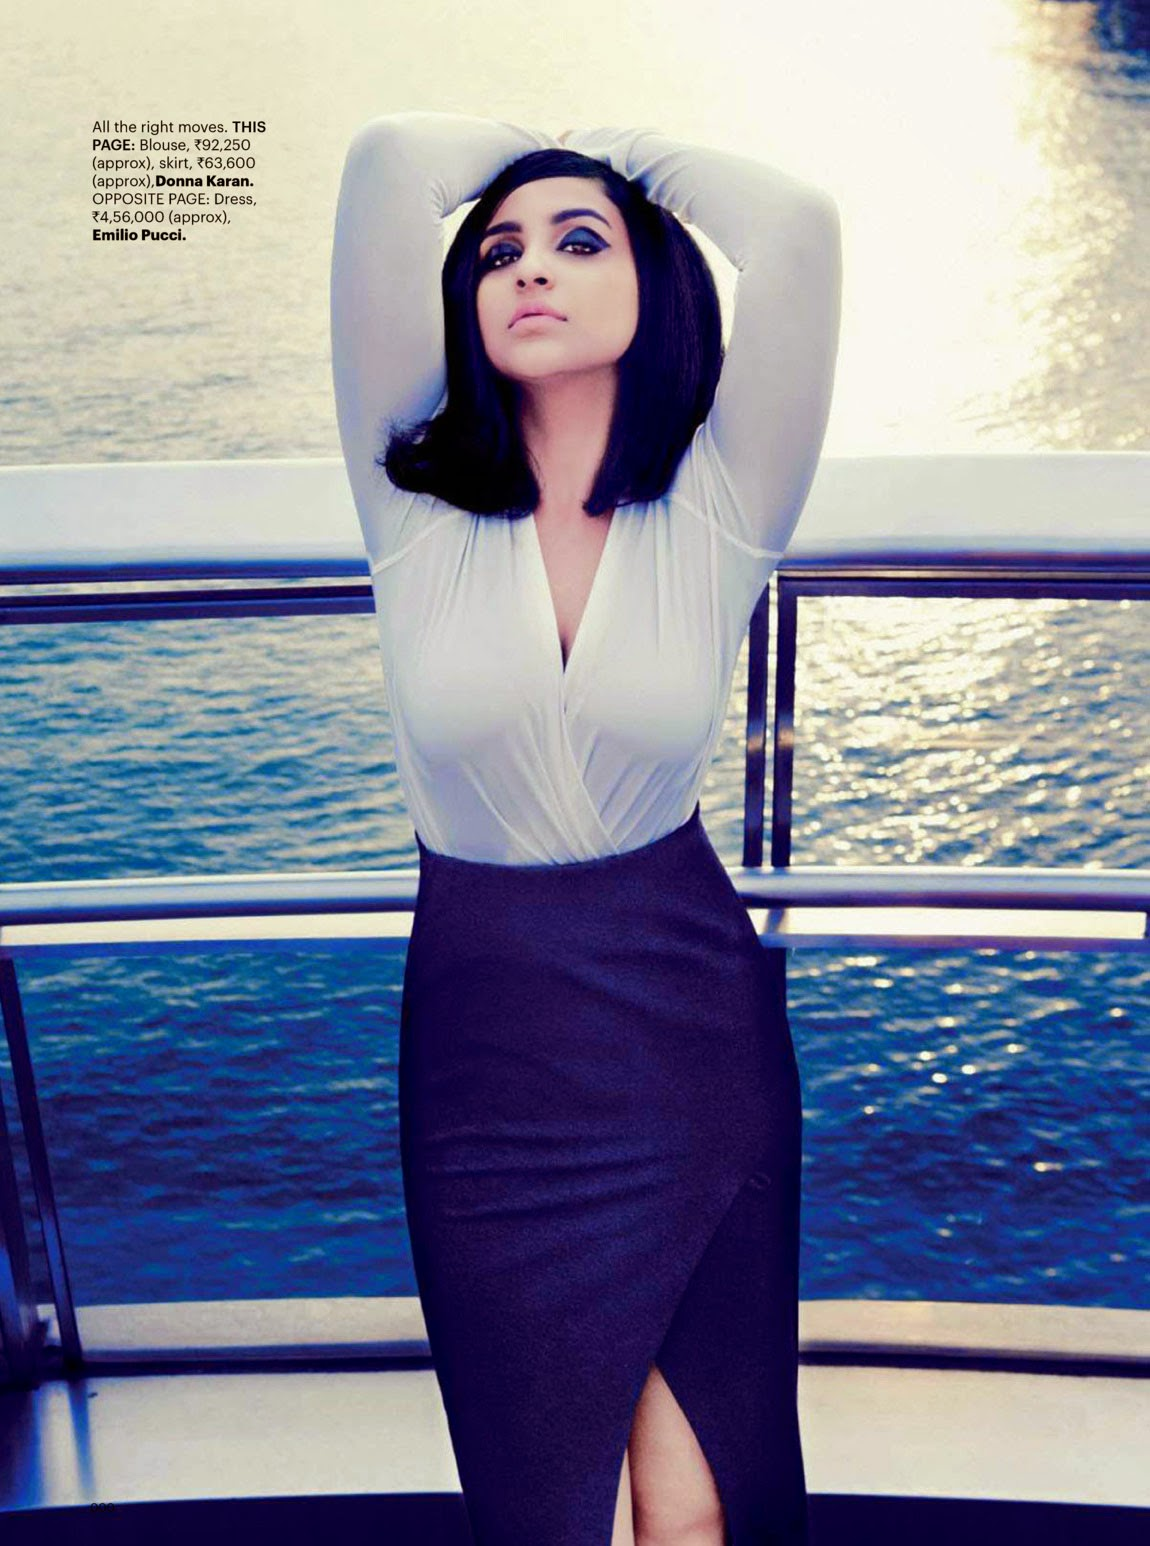 Parineeti Chopra in tight blouse & skirt in Harpers Bazaar India Magazine